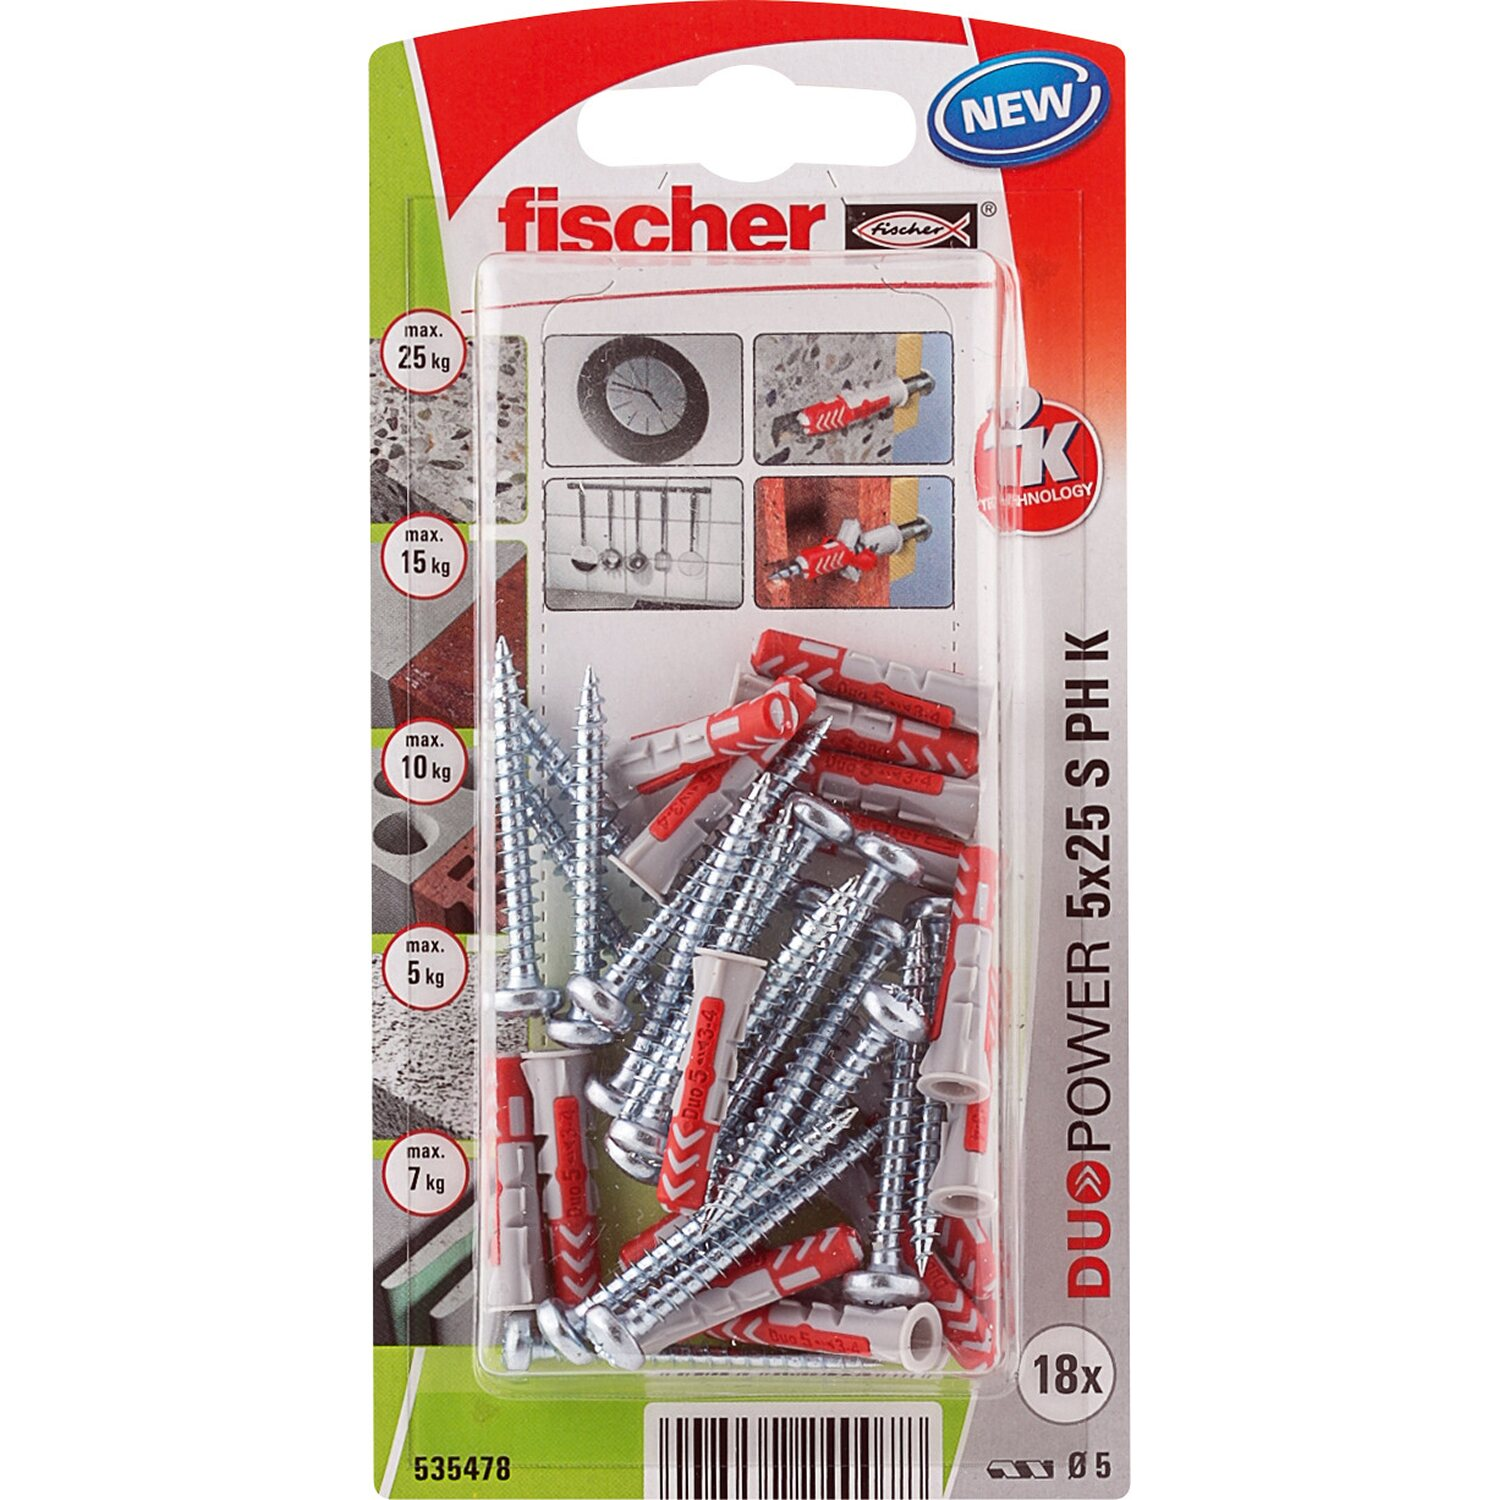 Fischer Duopower 5X25 S PH K NV